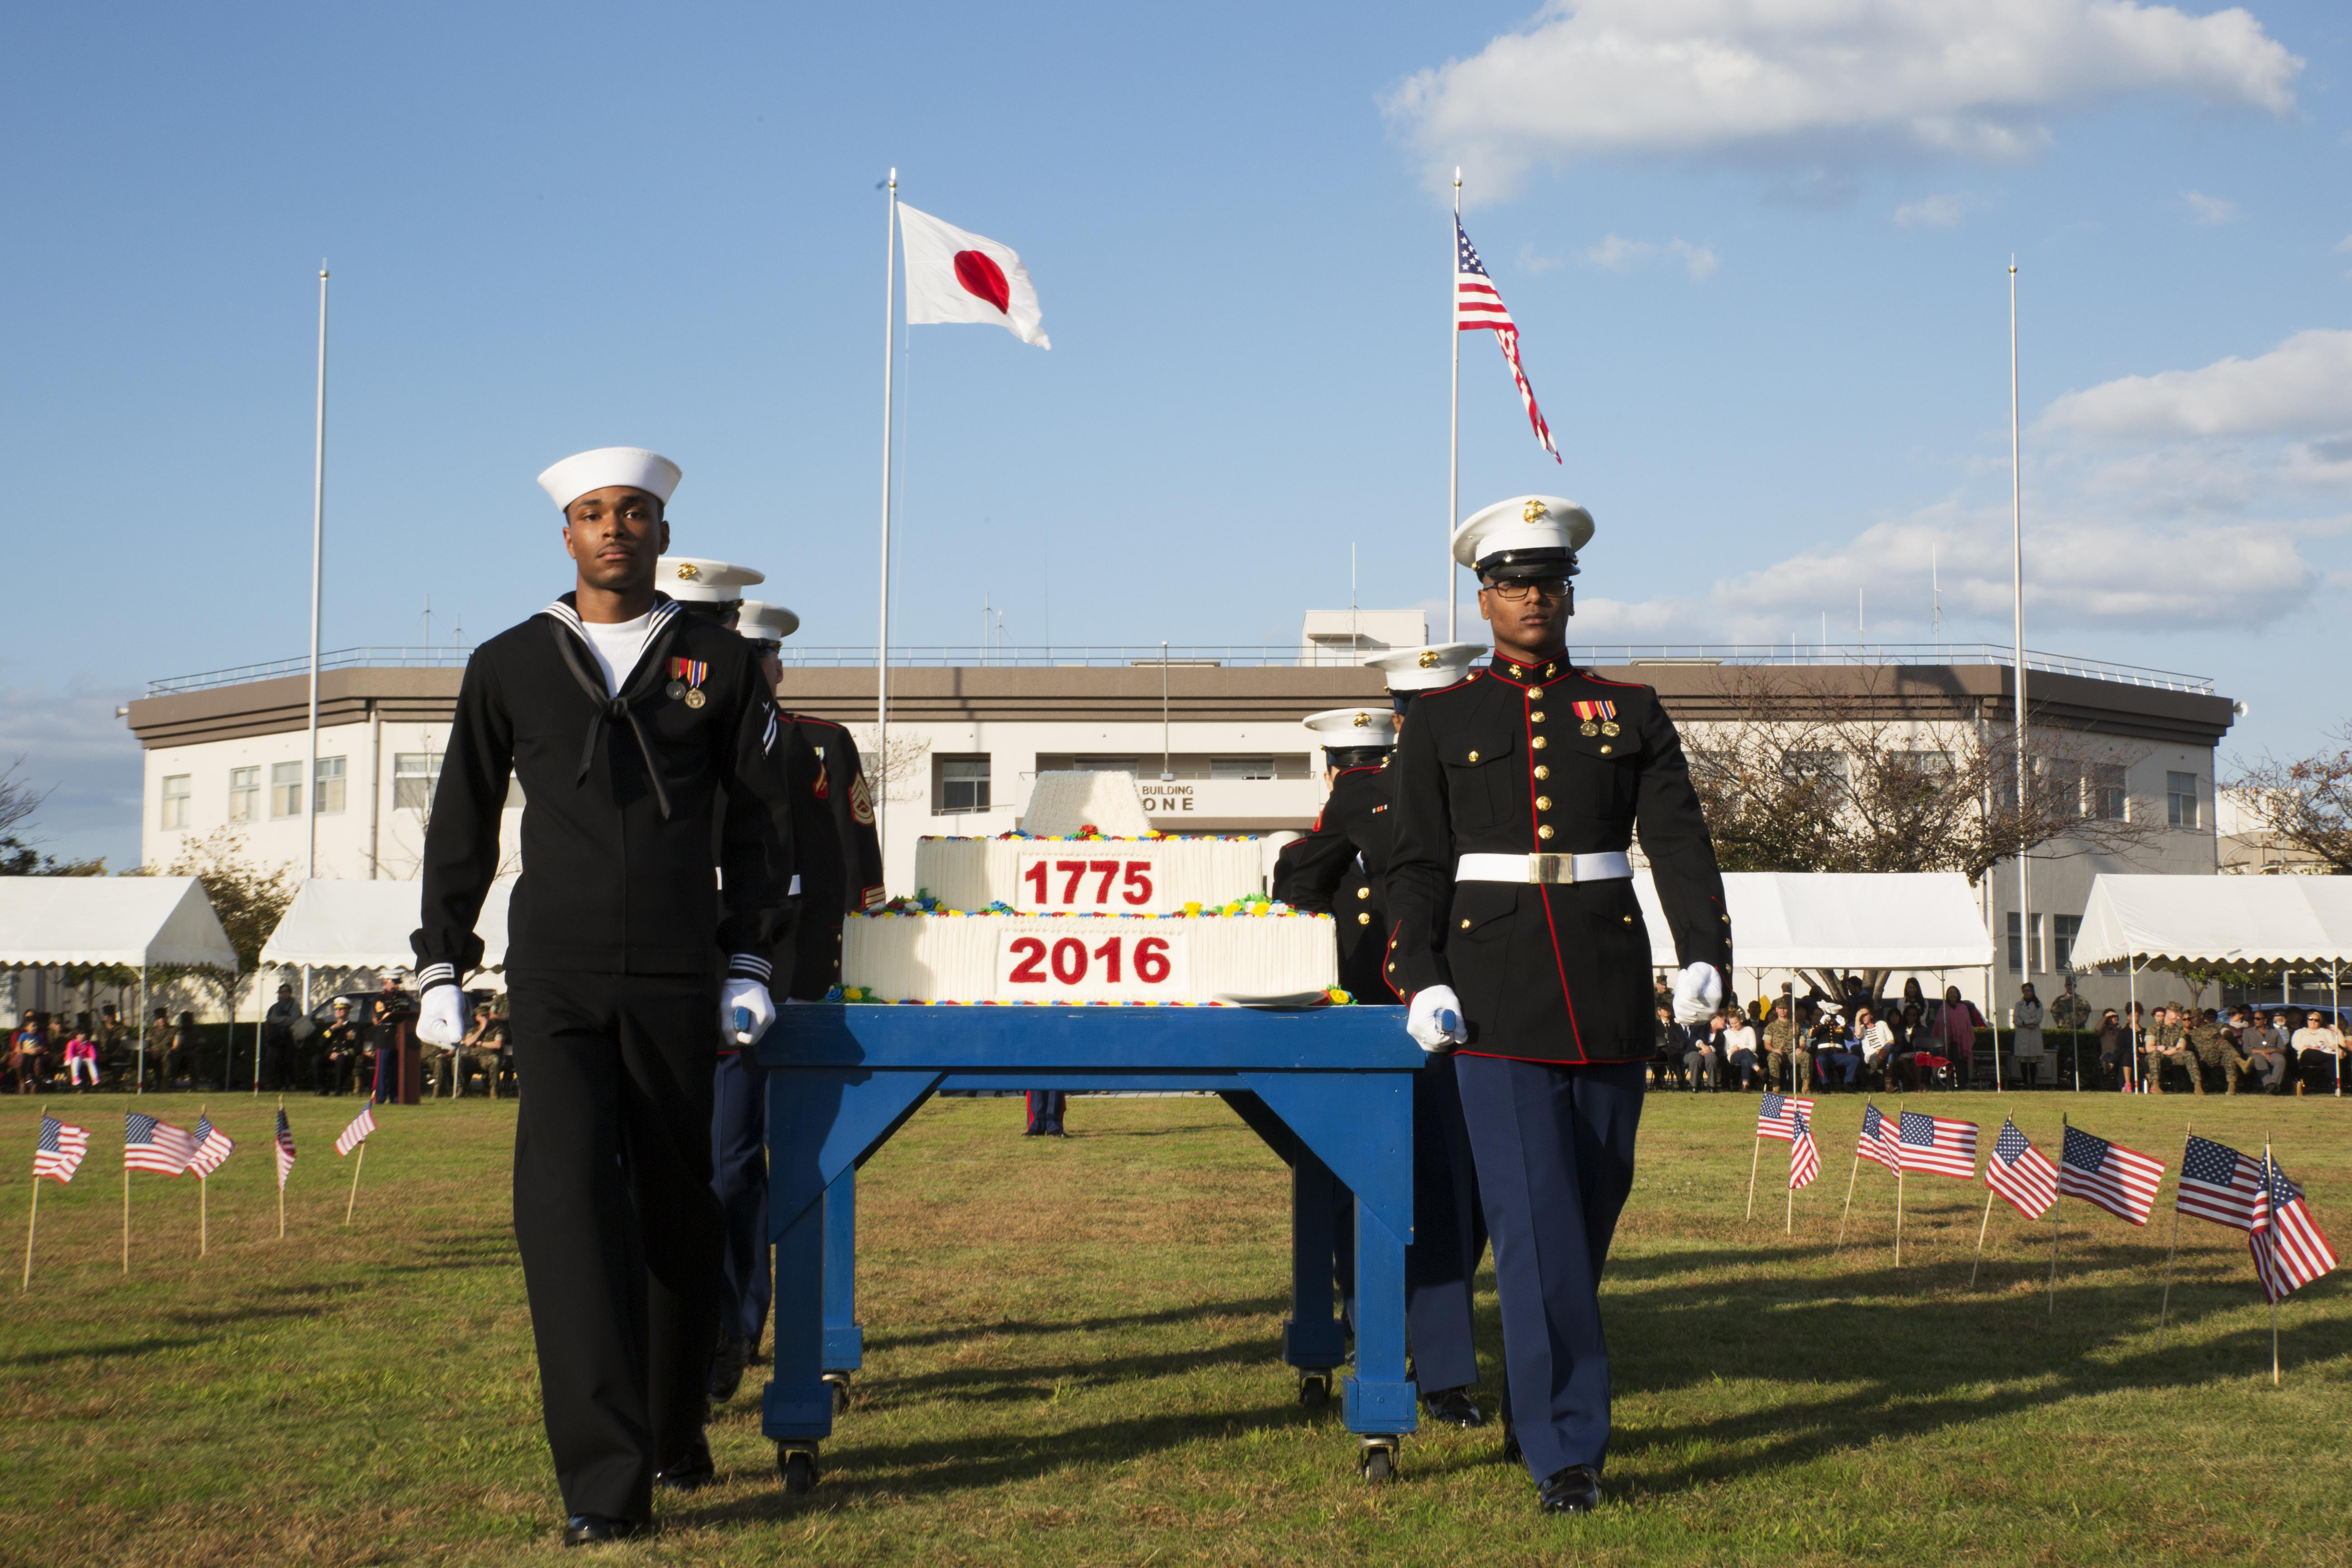 iwakuni japan dating Jobs 1 - 15 of 38 2045) location mcrd san diego, ca start date may 4, 2018 the hssi ssp administrative clerk is a full time non exempt employee responsible for emergency dispatcher (iwakuni, japan) jon 2043 hampton, va opening for emergency dispatcher (job order no 2043) location mcas iwakuni, japan.